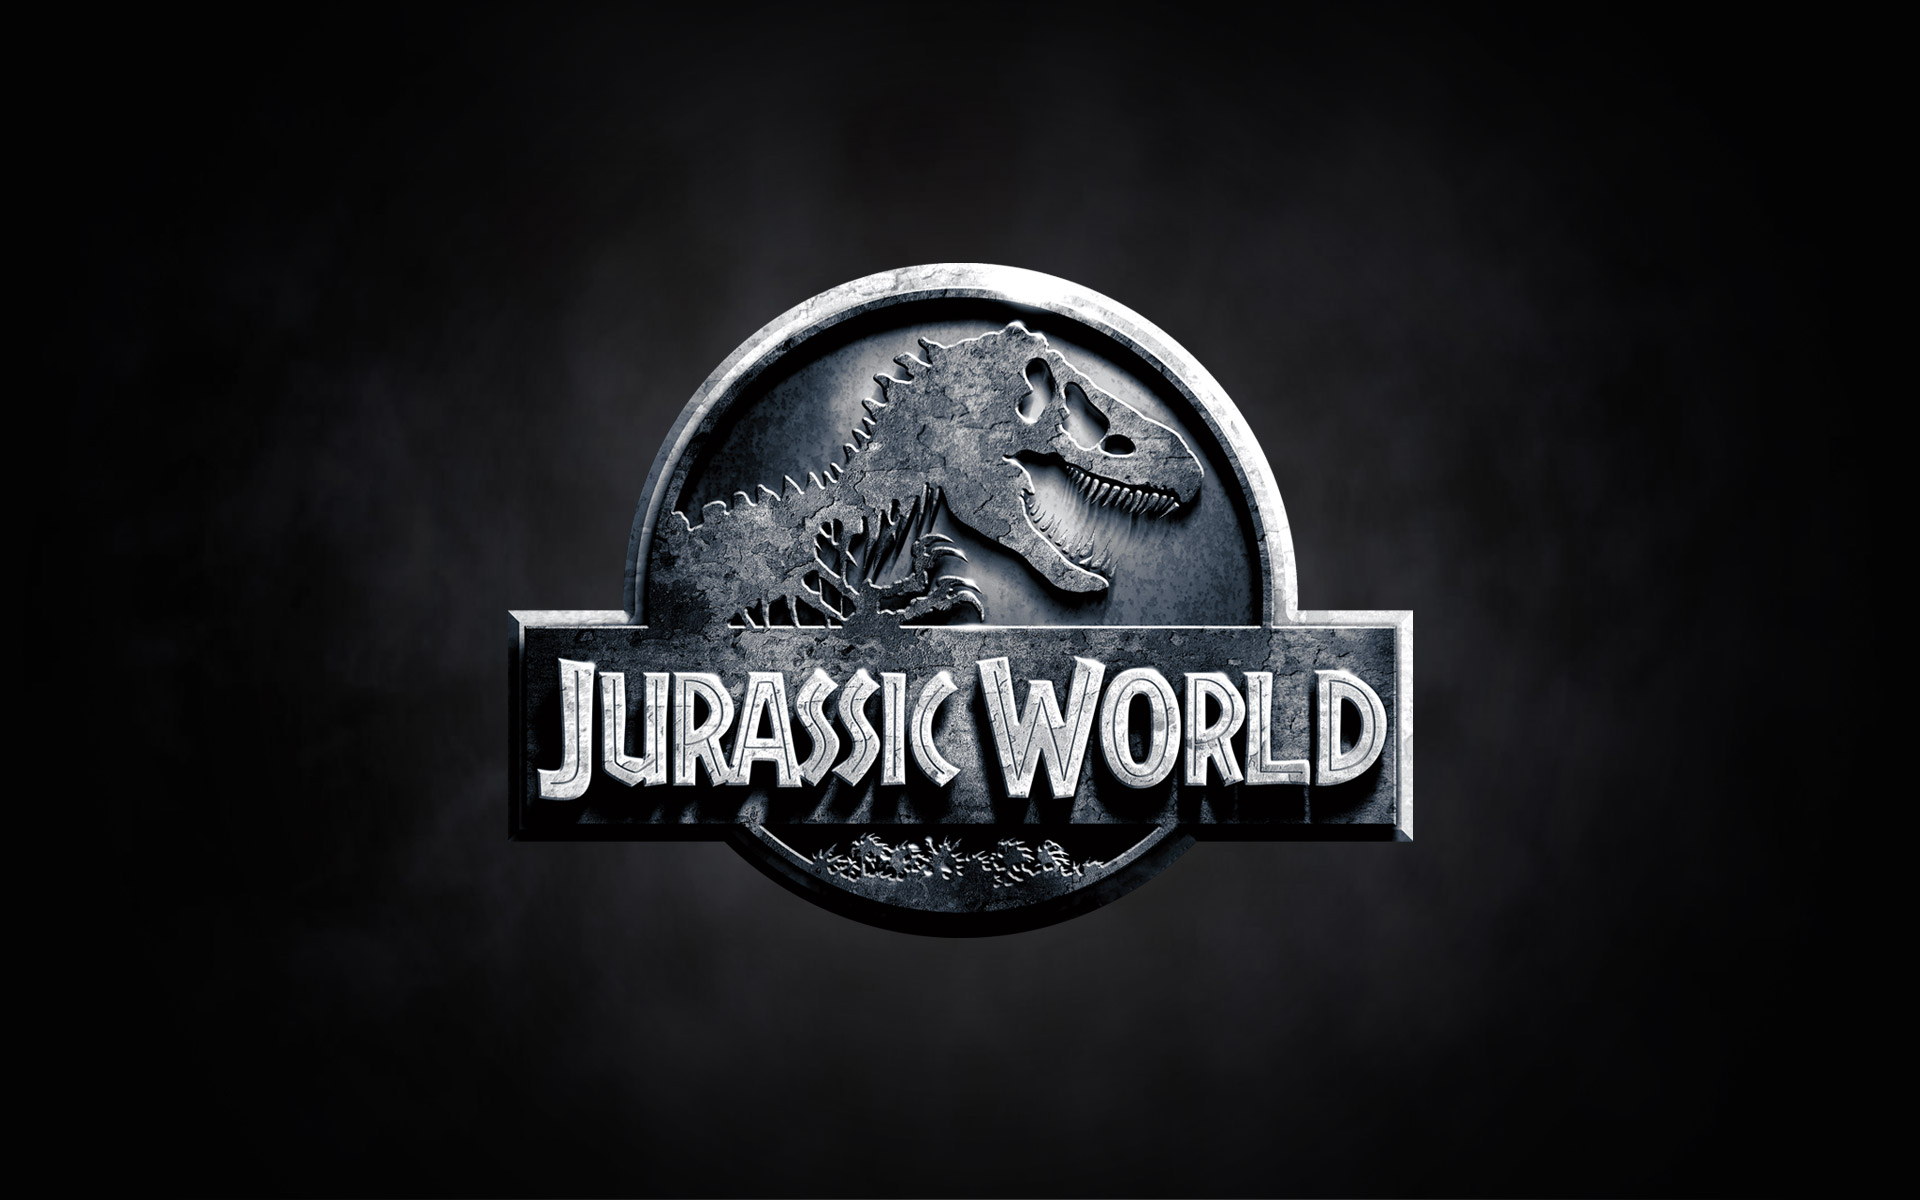 jurassic world 2015 dinosaurs desktop iphone 6 wallpapers hd. Black Bedroom Furniture Sets. Home Design Ideas